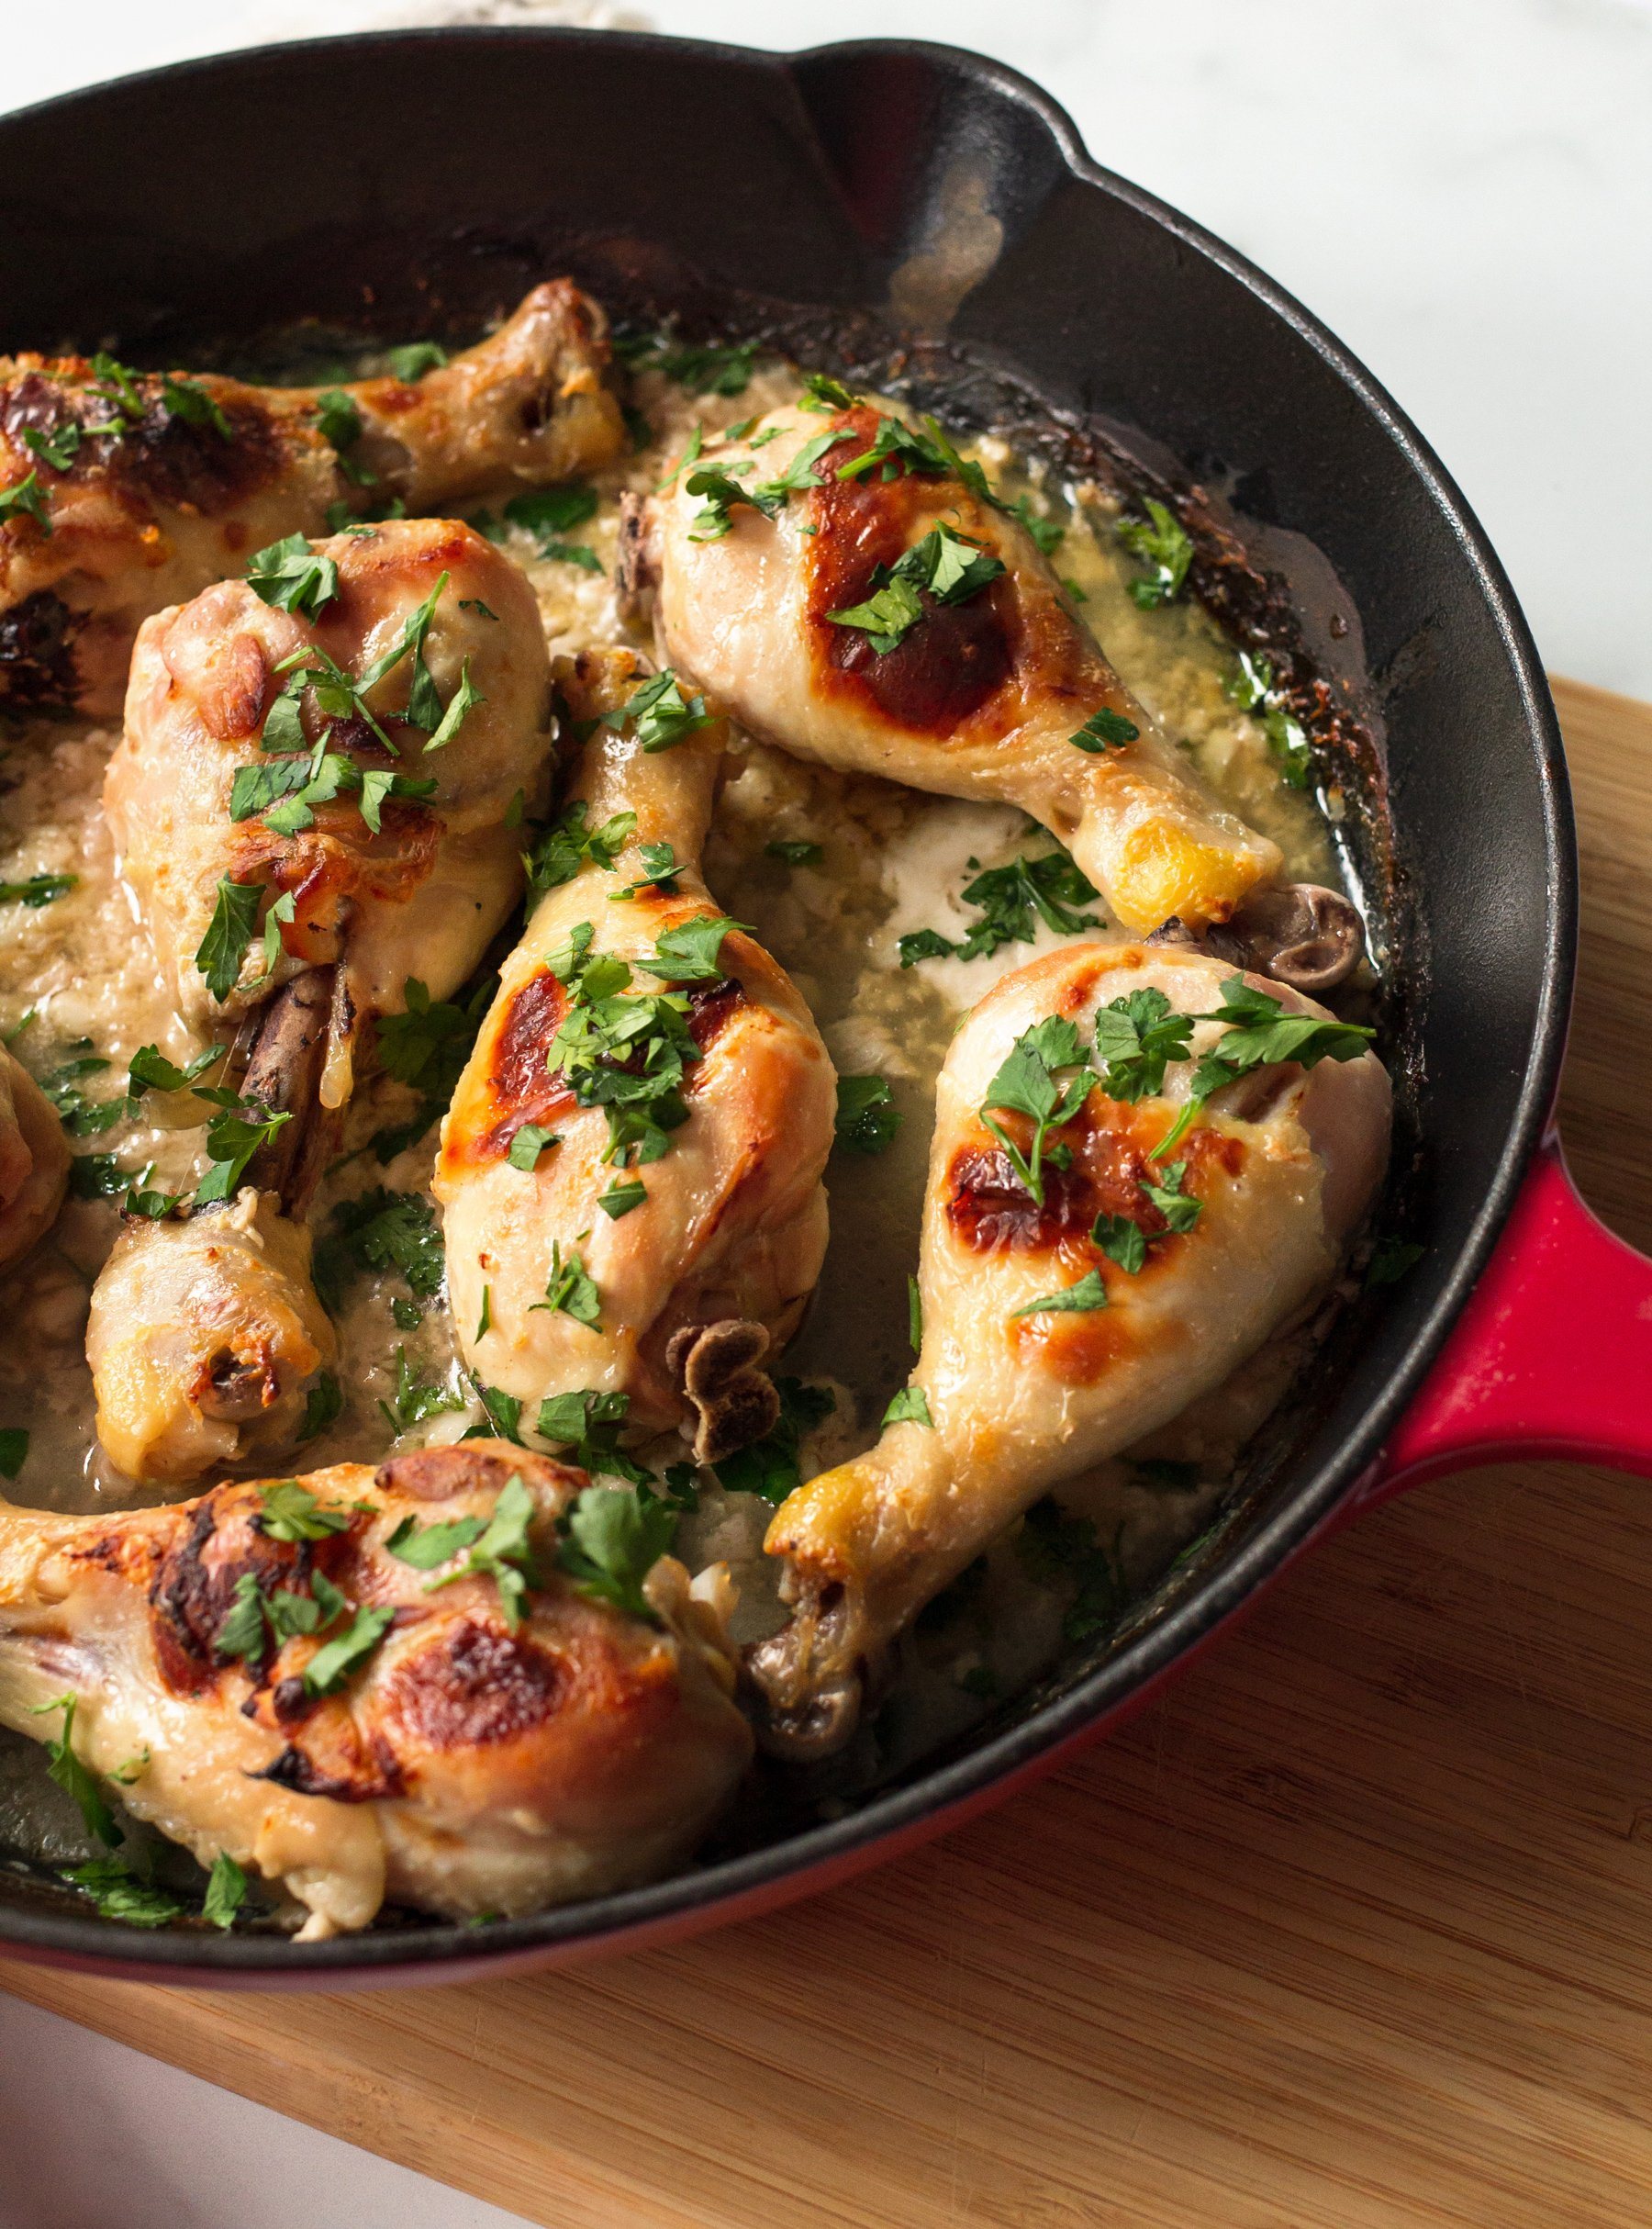 Large Chicken Drumsticks in a Red Cast Iron Skillet Sprinkled With Parsley